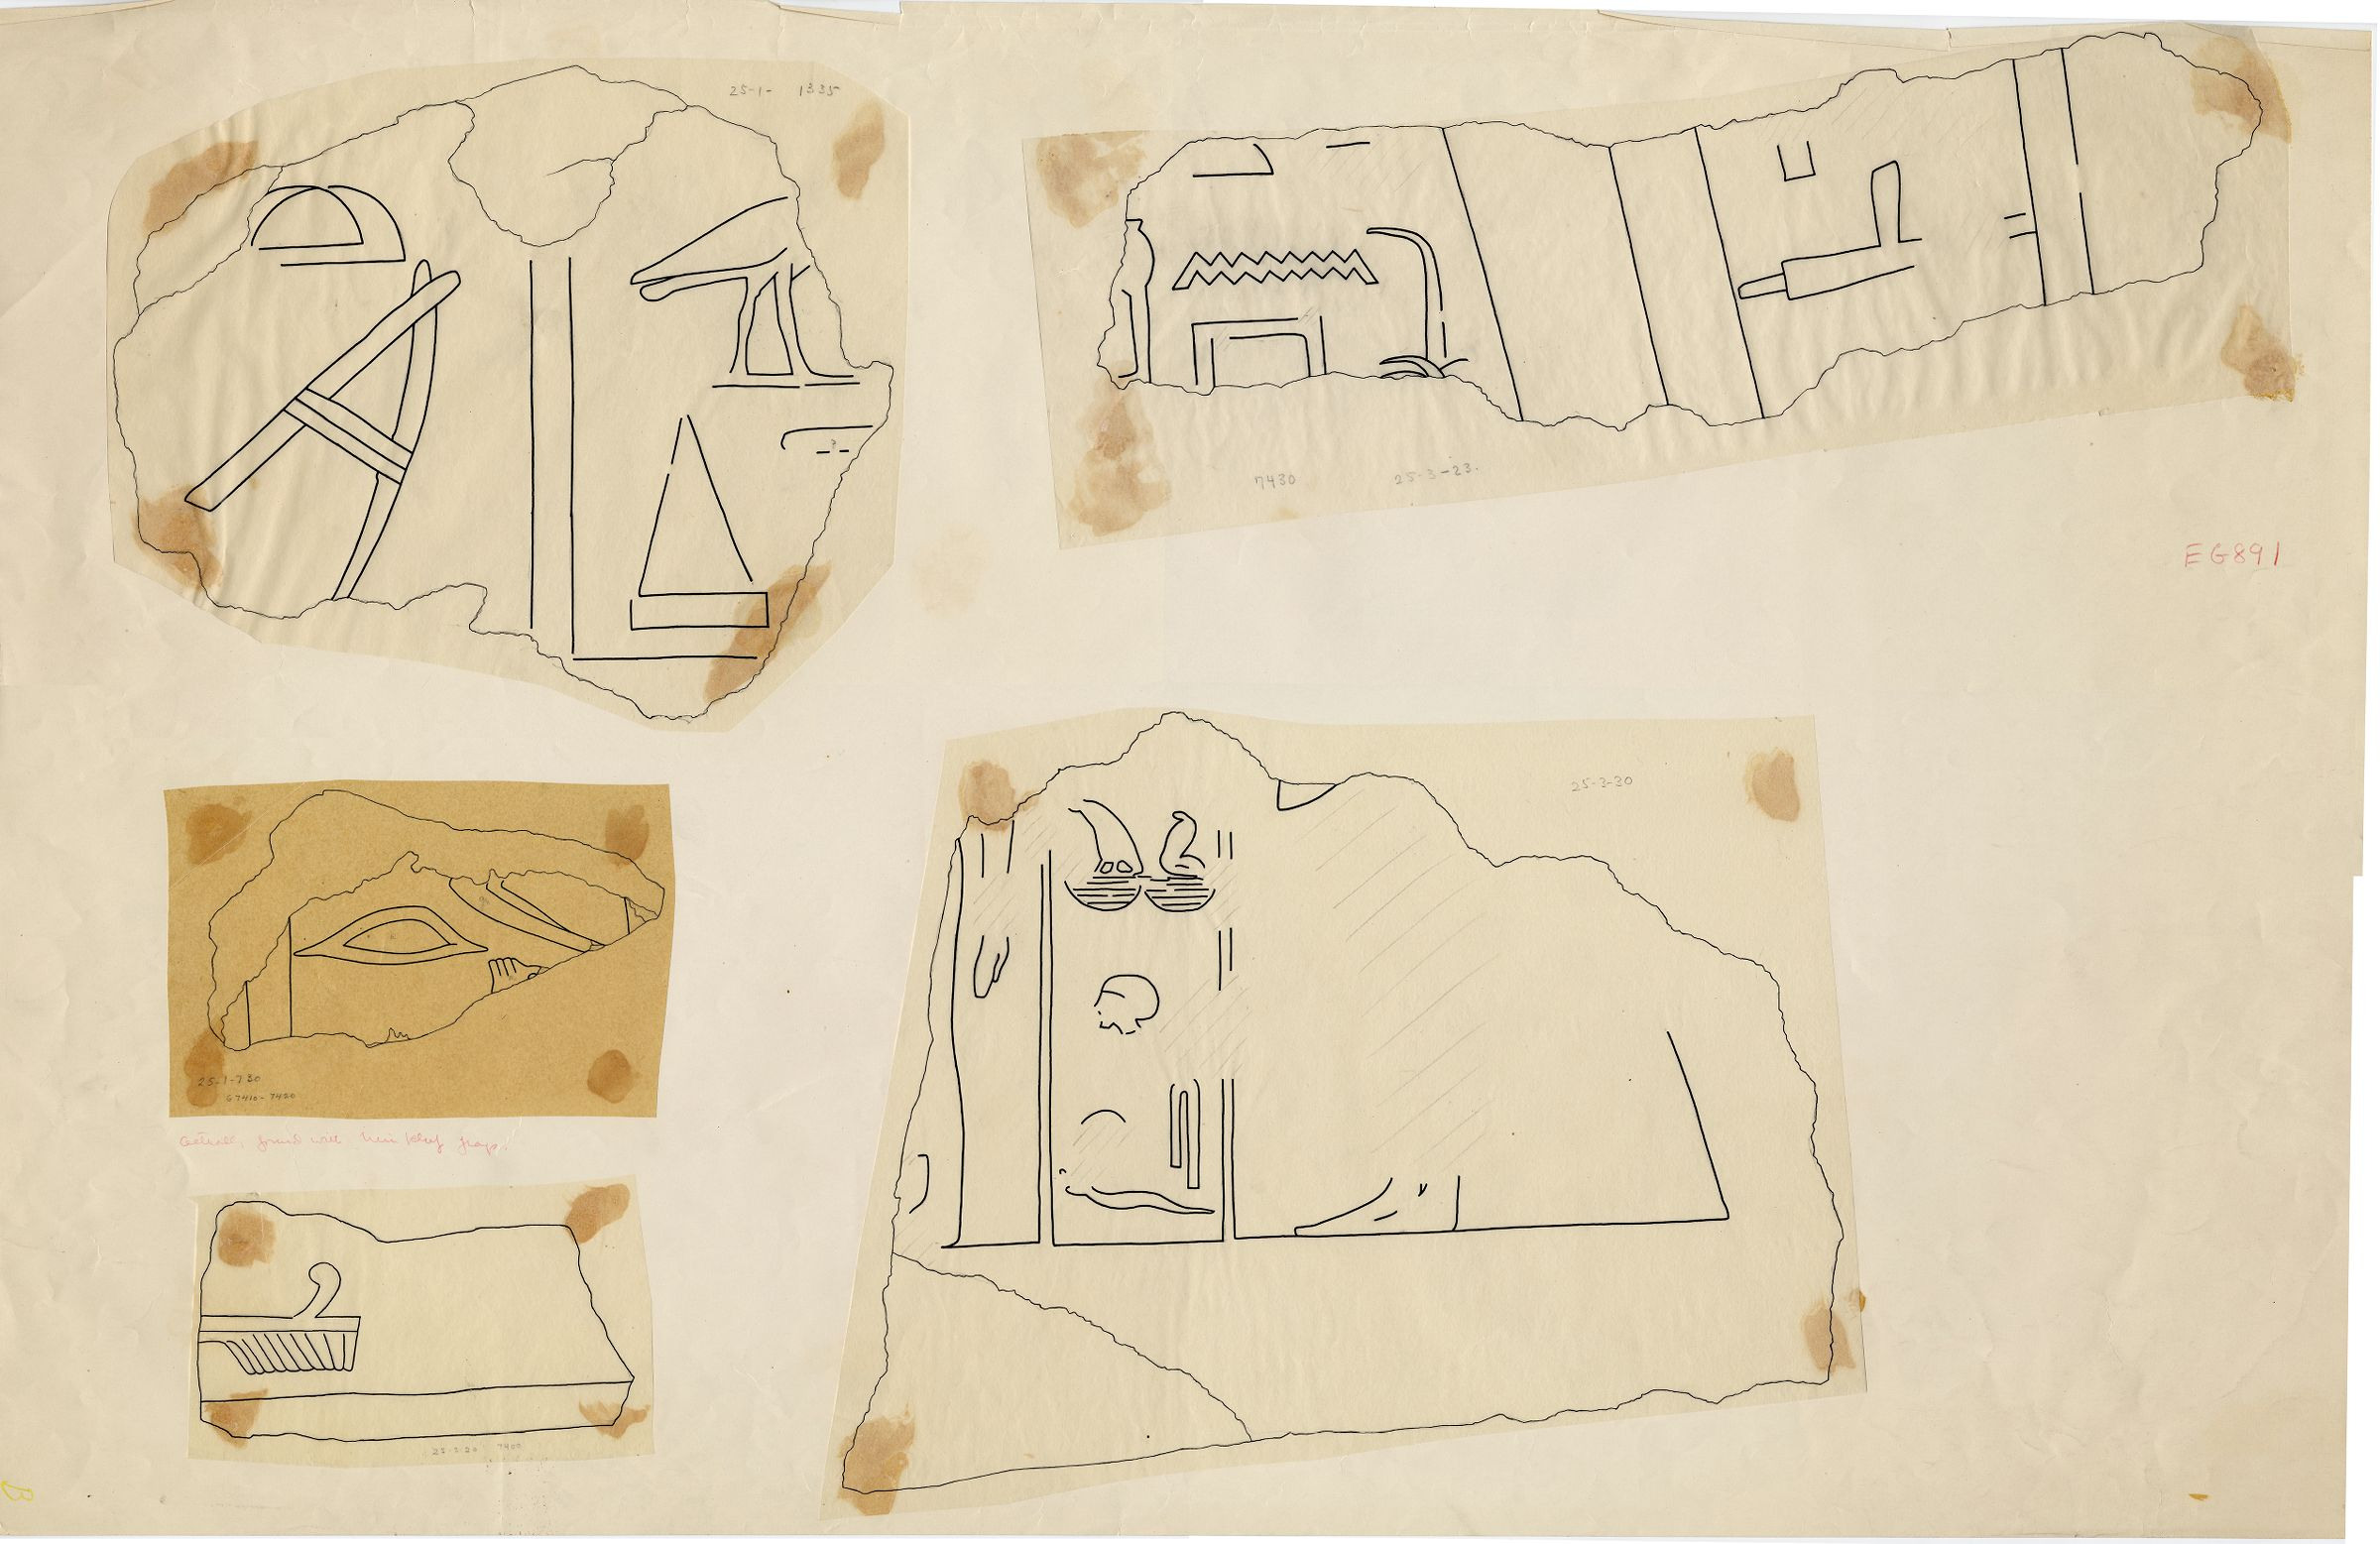 Drawings: fragments of relief from Street G 7400, G 7410-7420, G 7430-7440